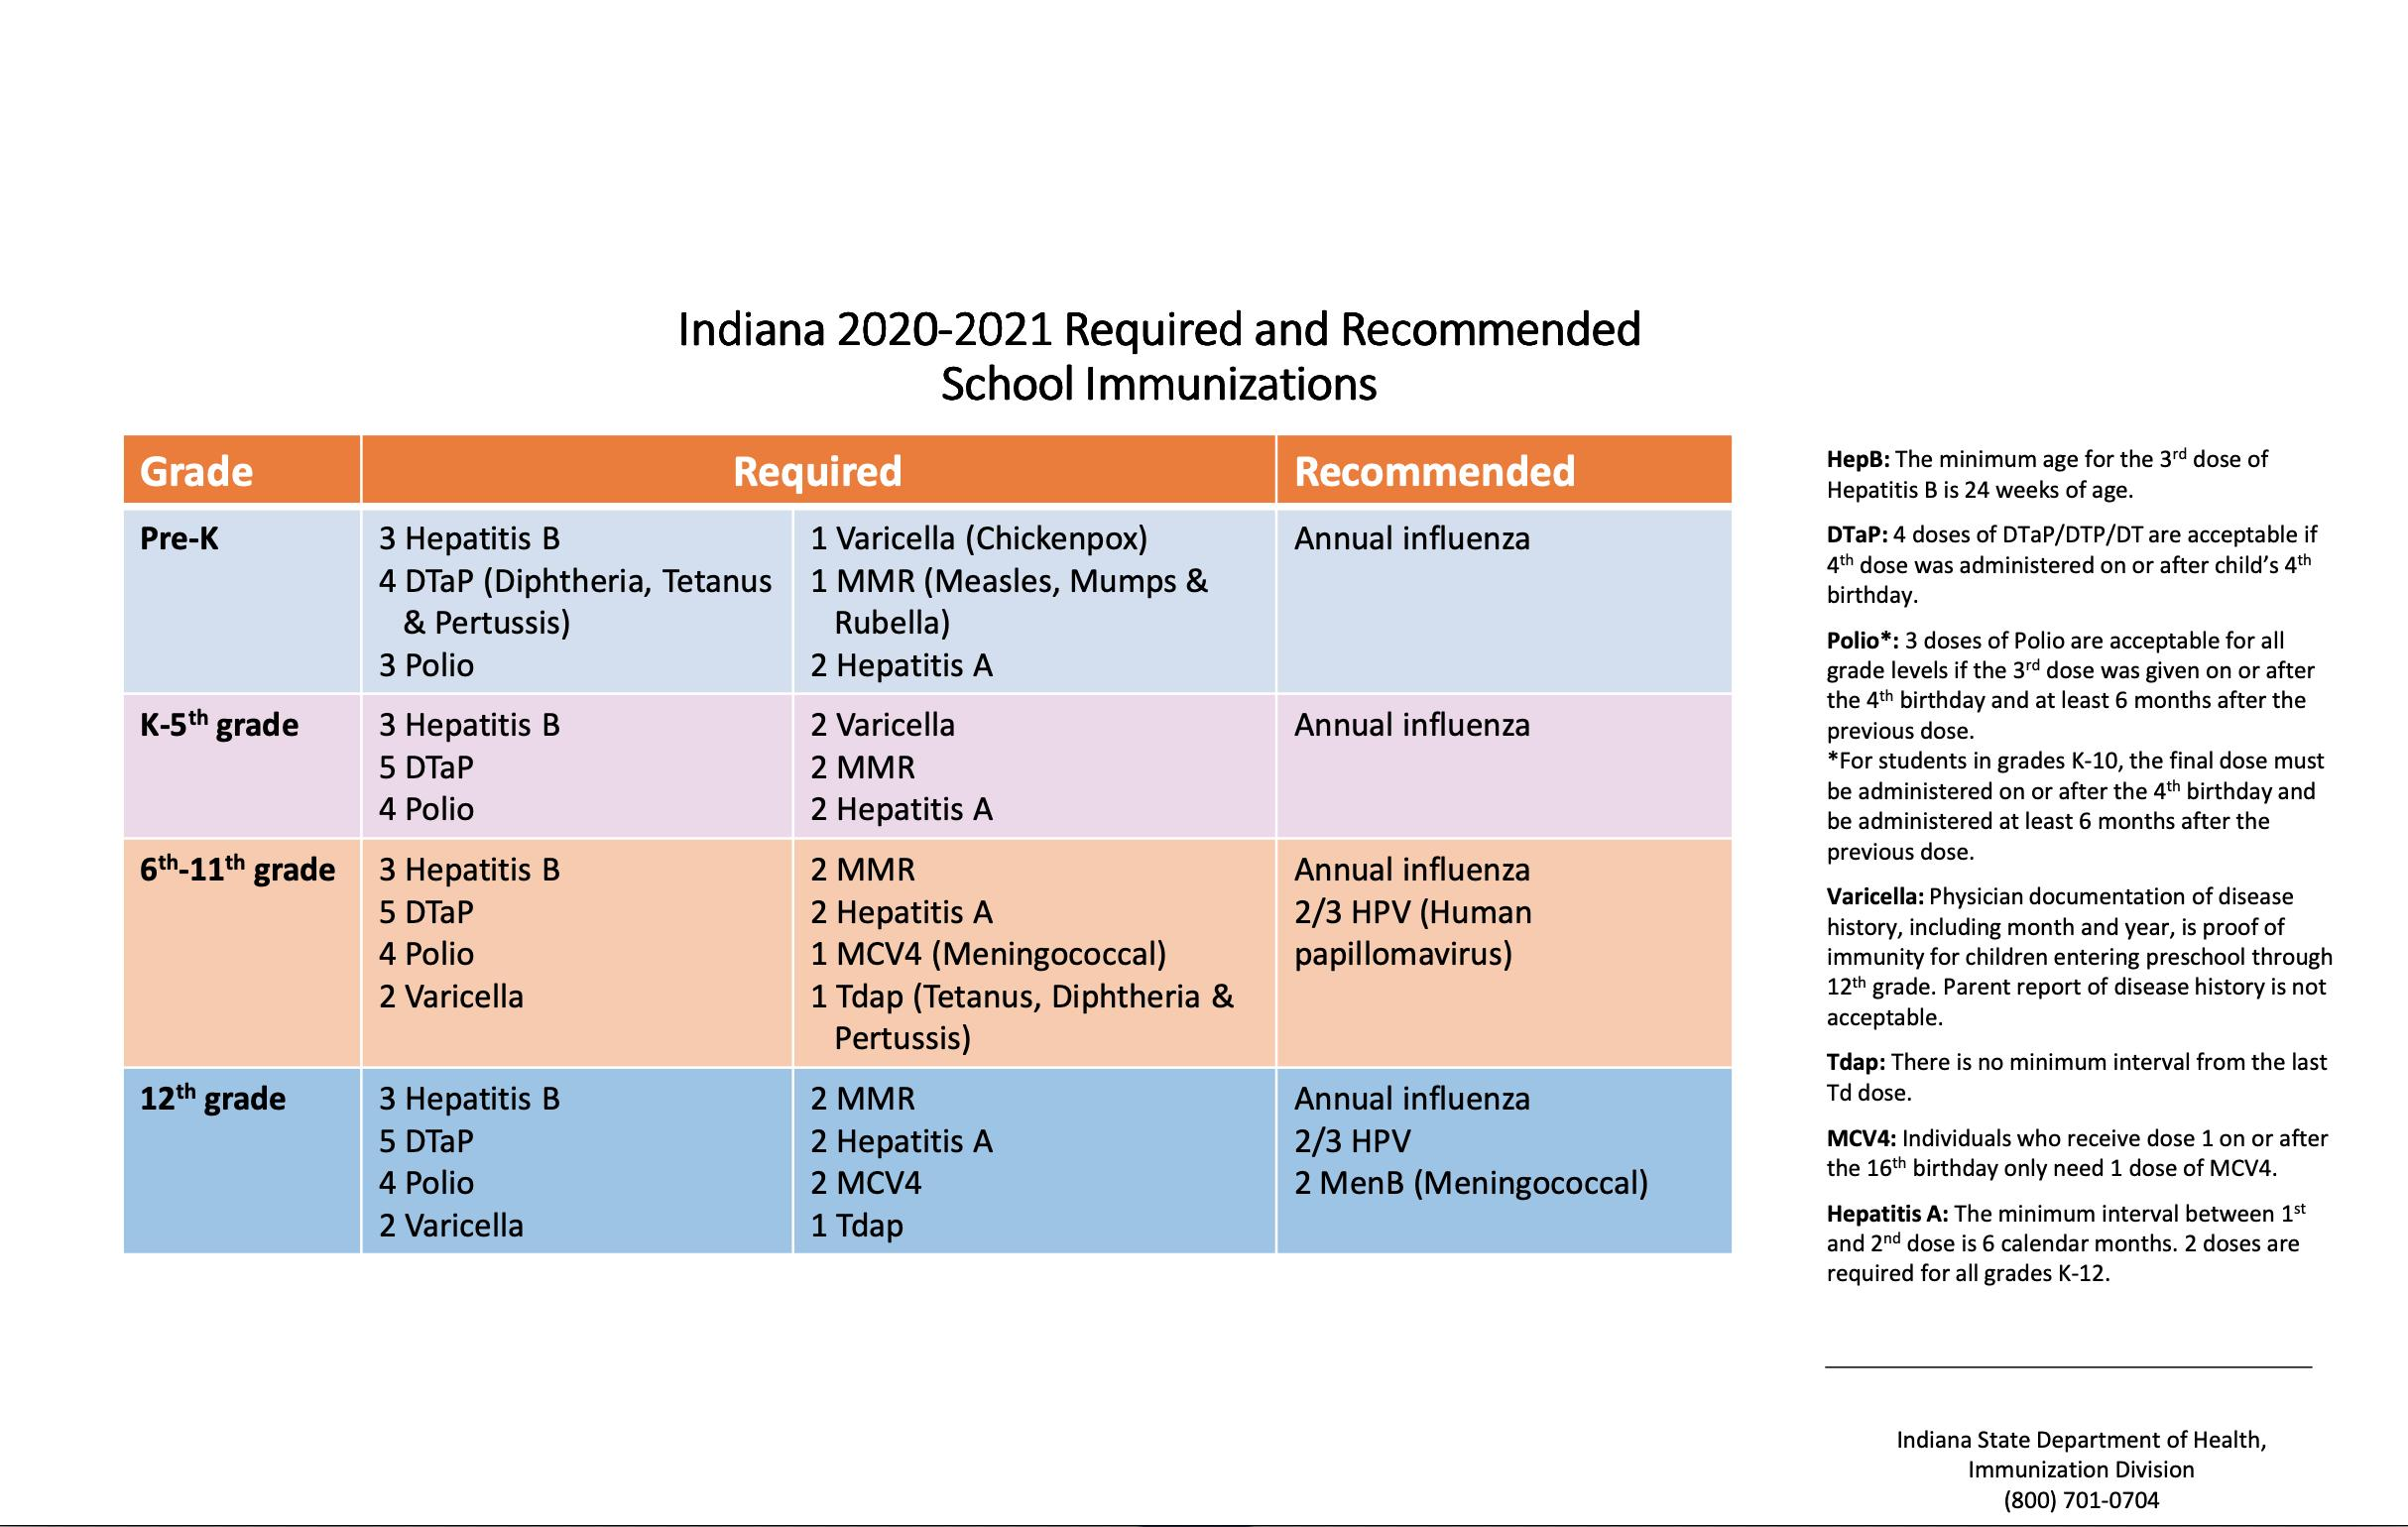 Indiana 2020-21 Required/Recommended School Immunizations